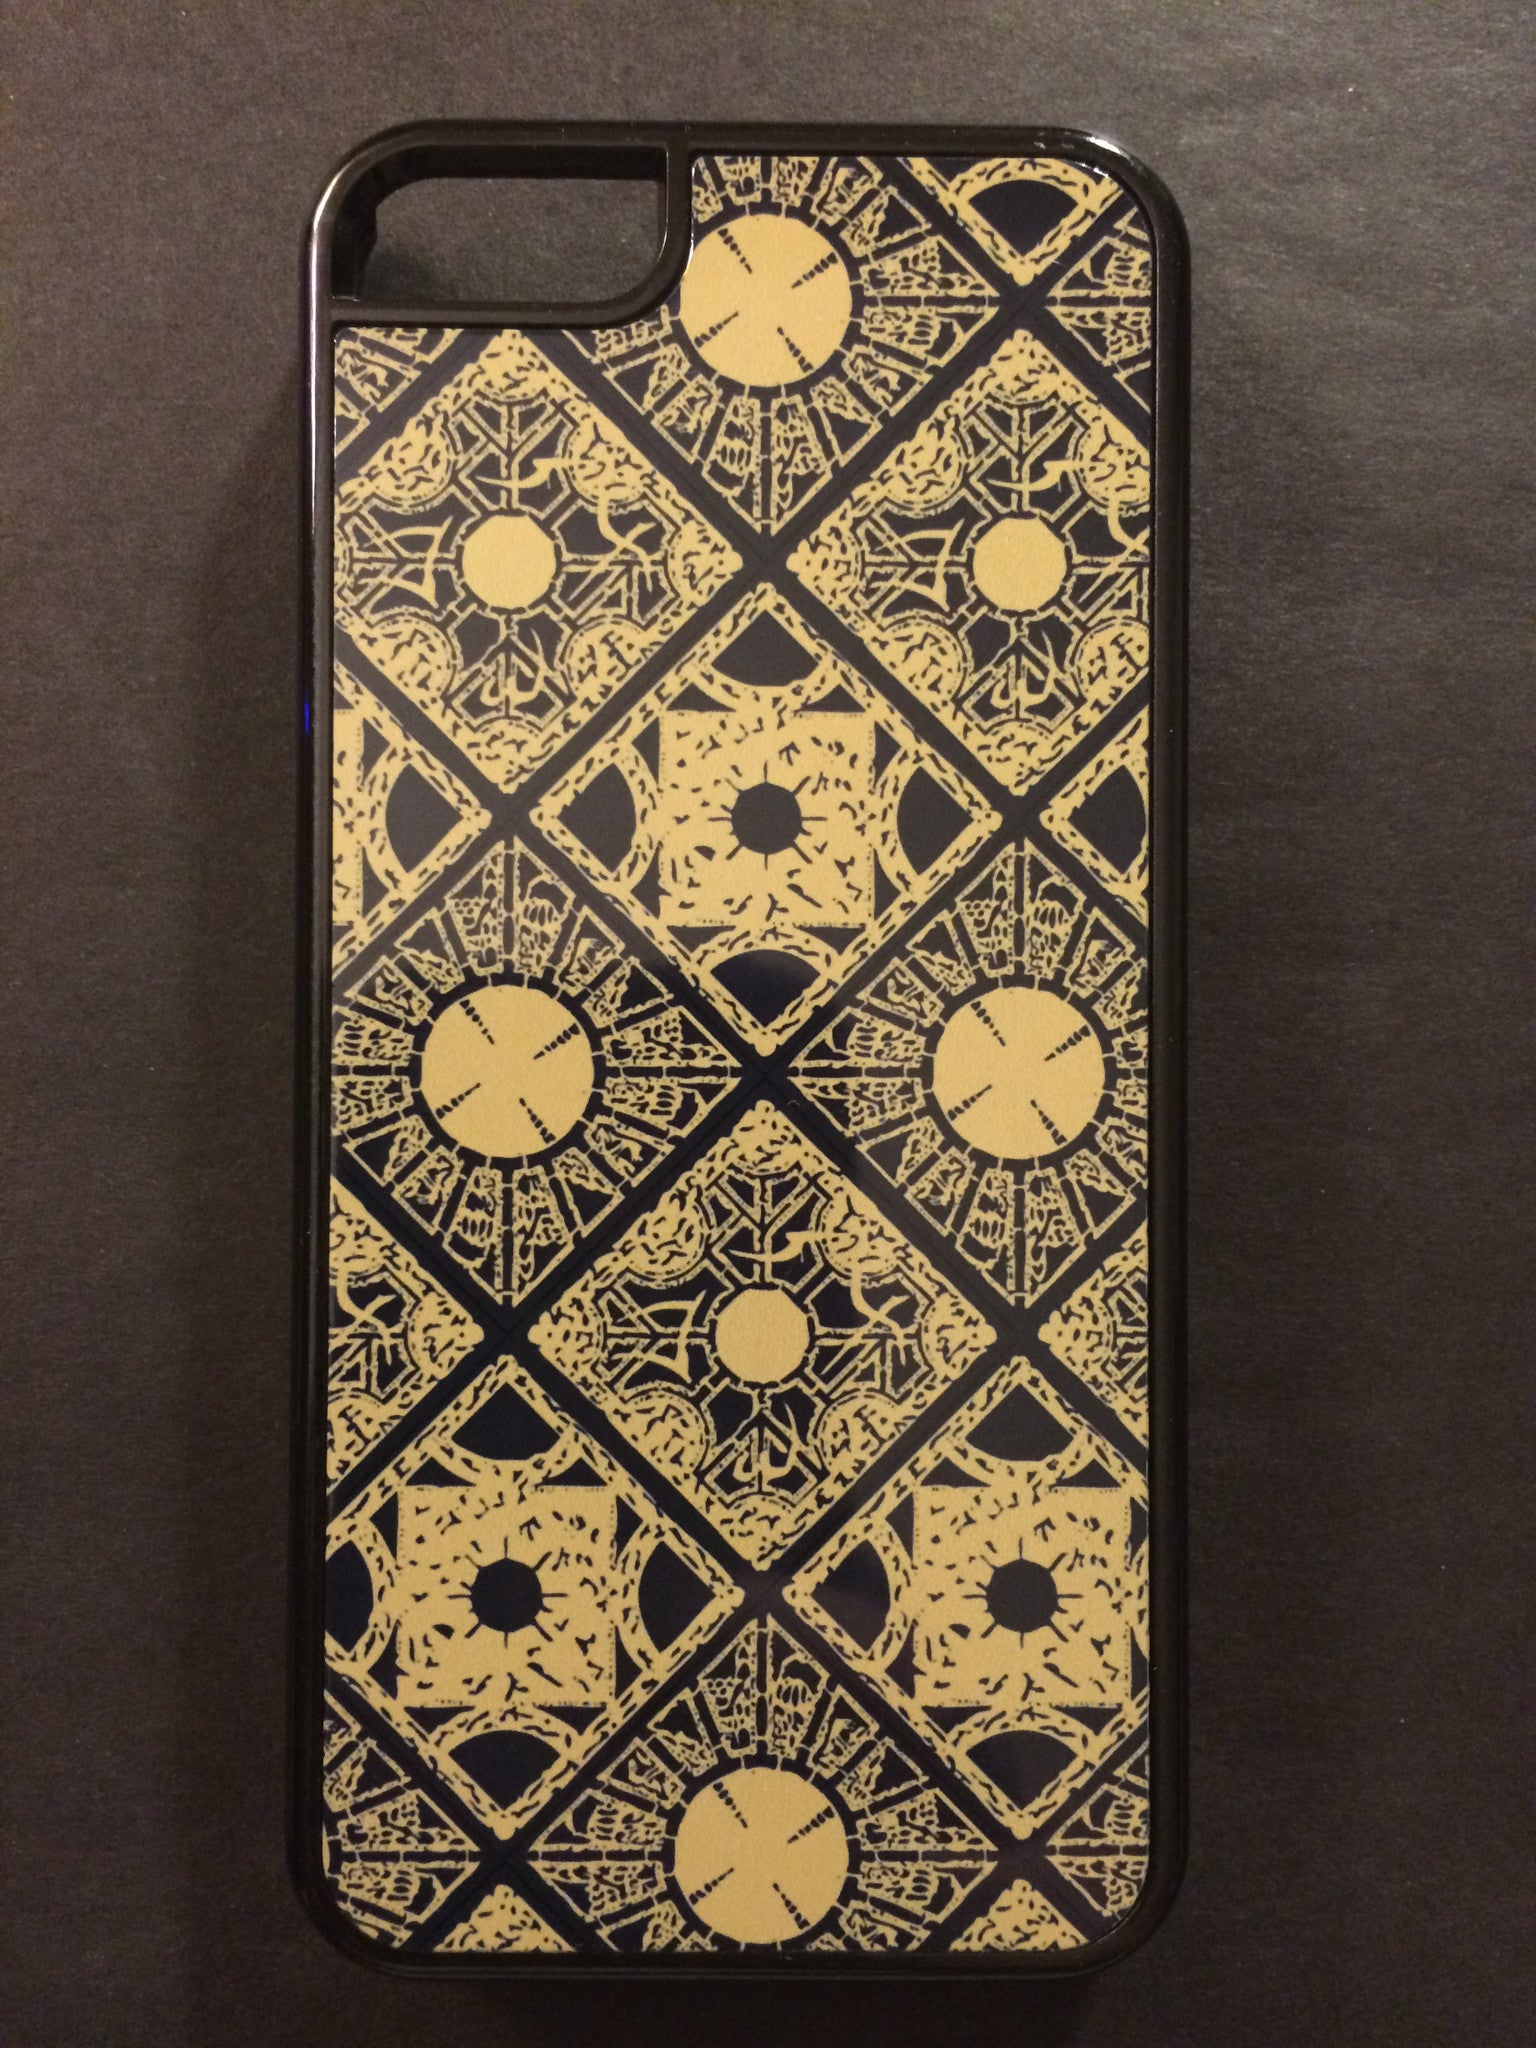 Hellraiser Lament Configuration iPhone 6/6S Case